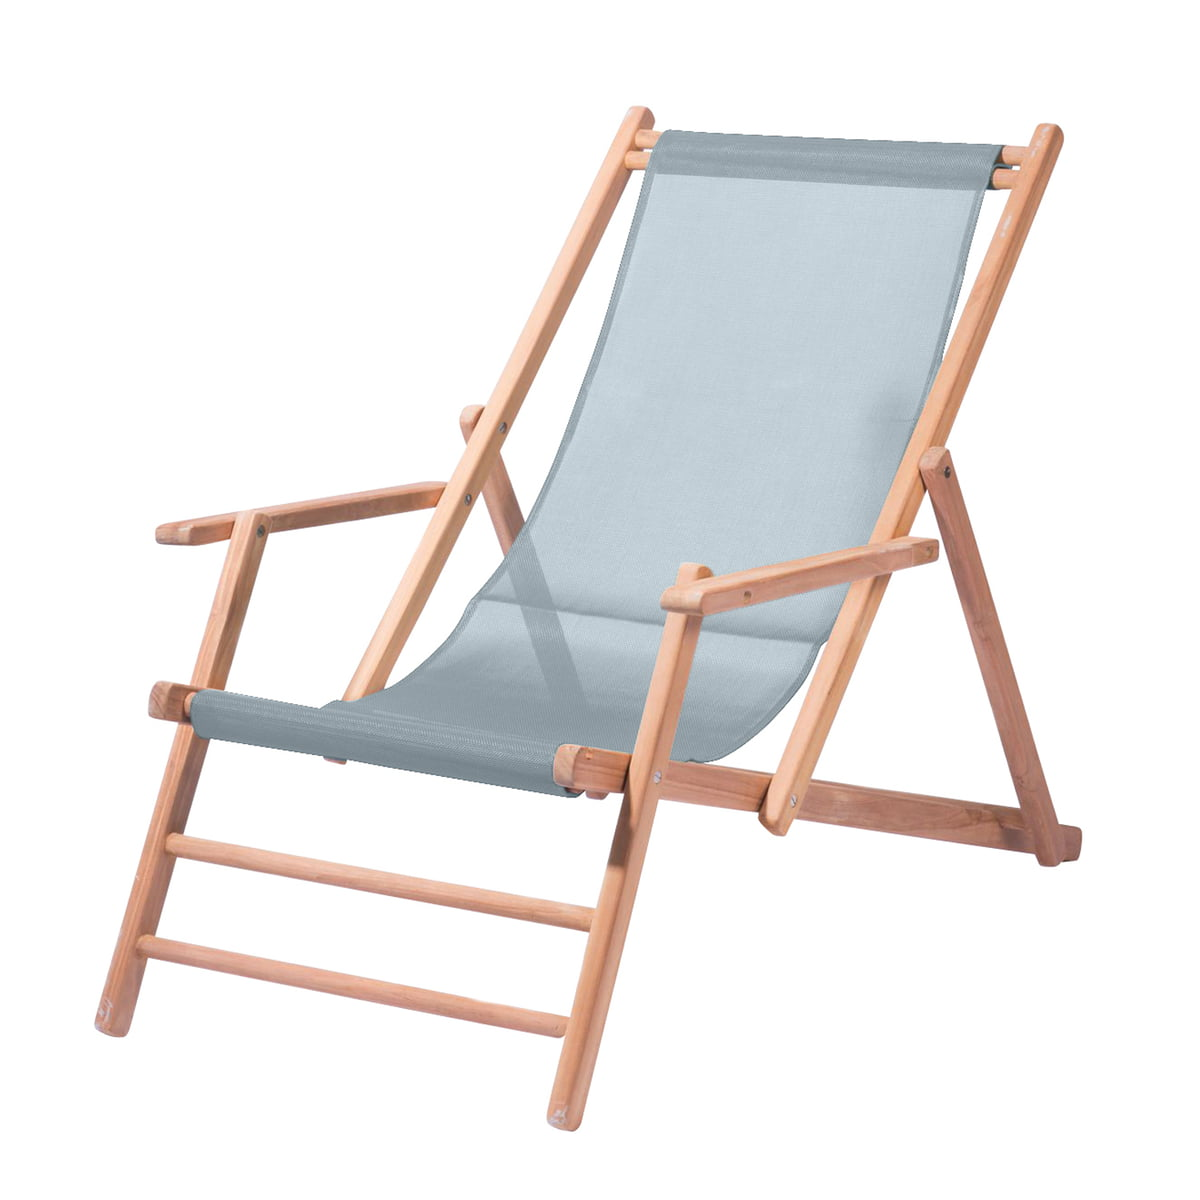 Jan Kurtz   Deckchair Teak, Plastic Cover Fabric, Ocean Blue